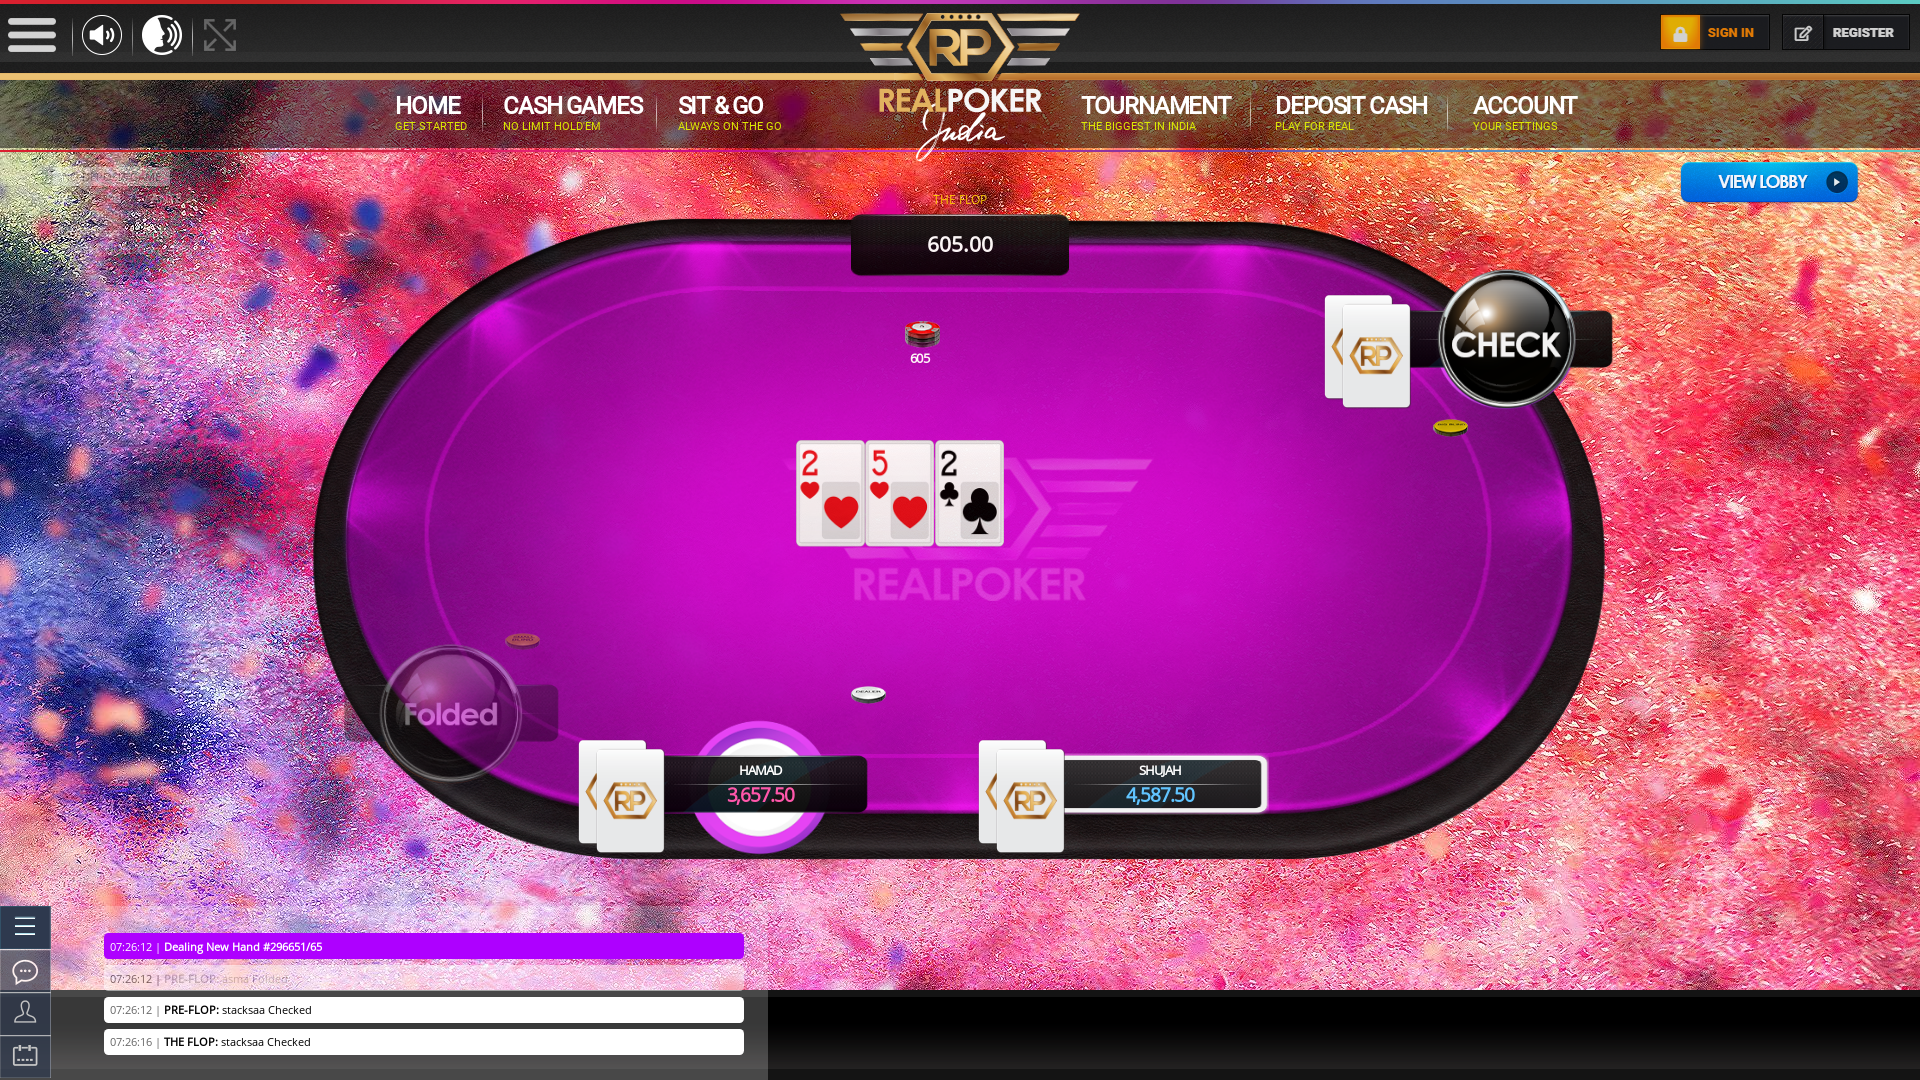 10 player texas holdem table at real poker with the table id 296651